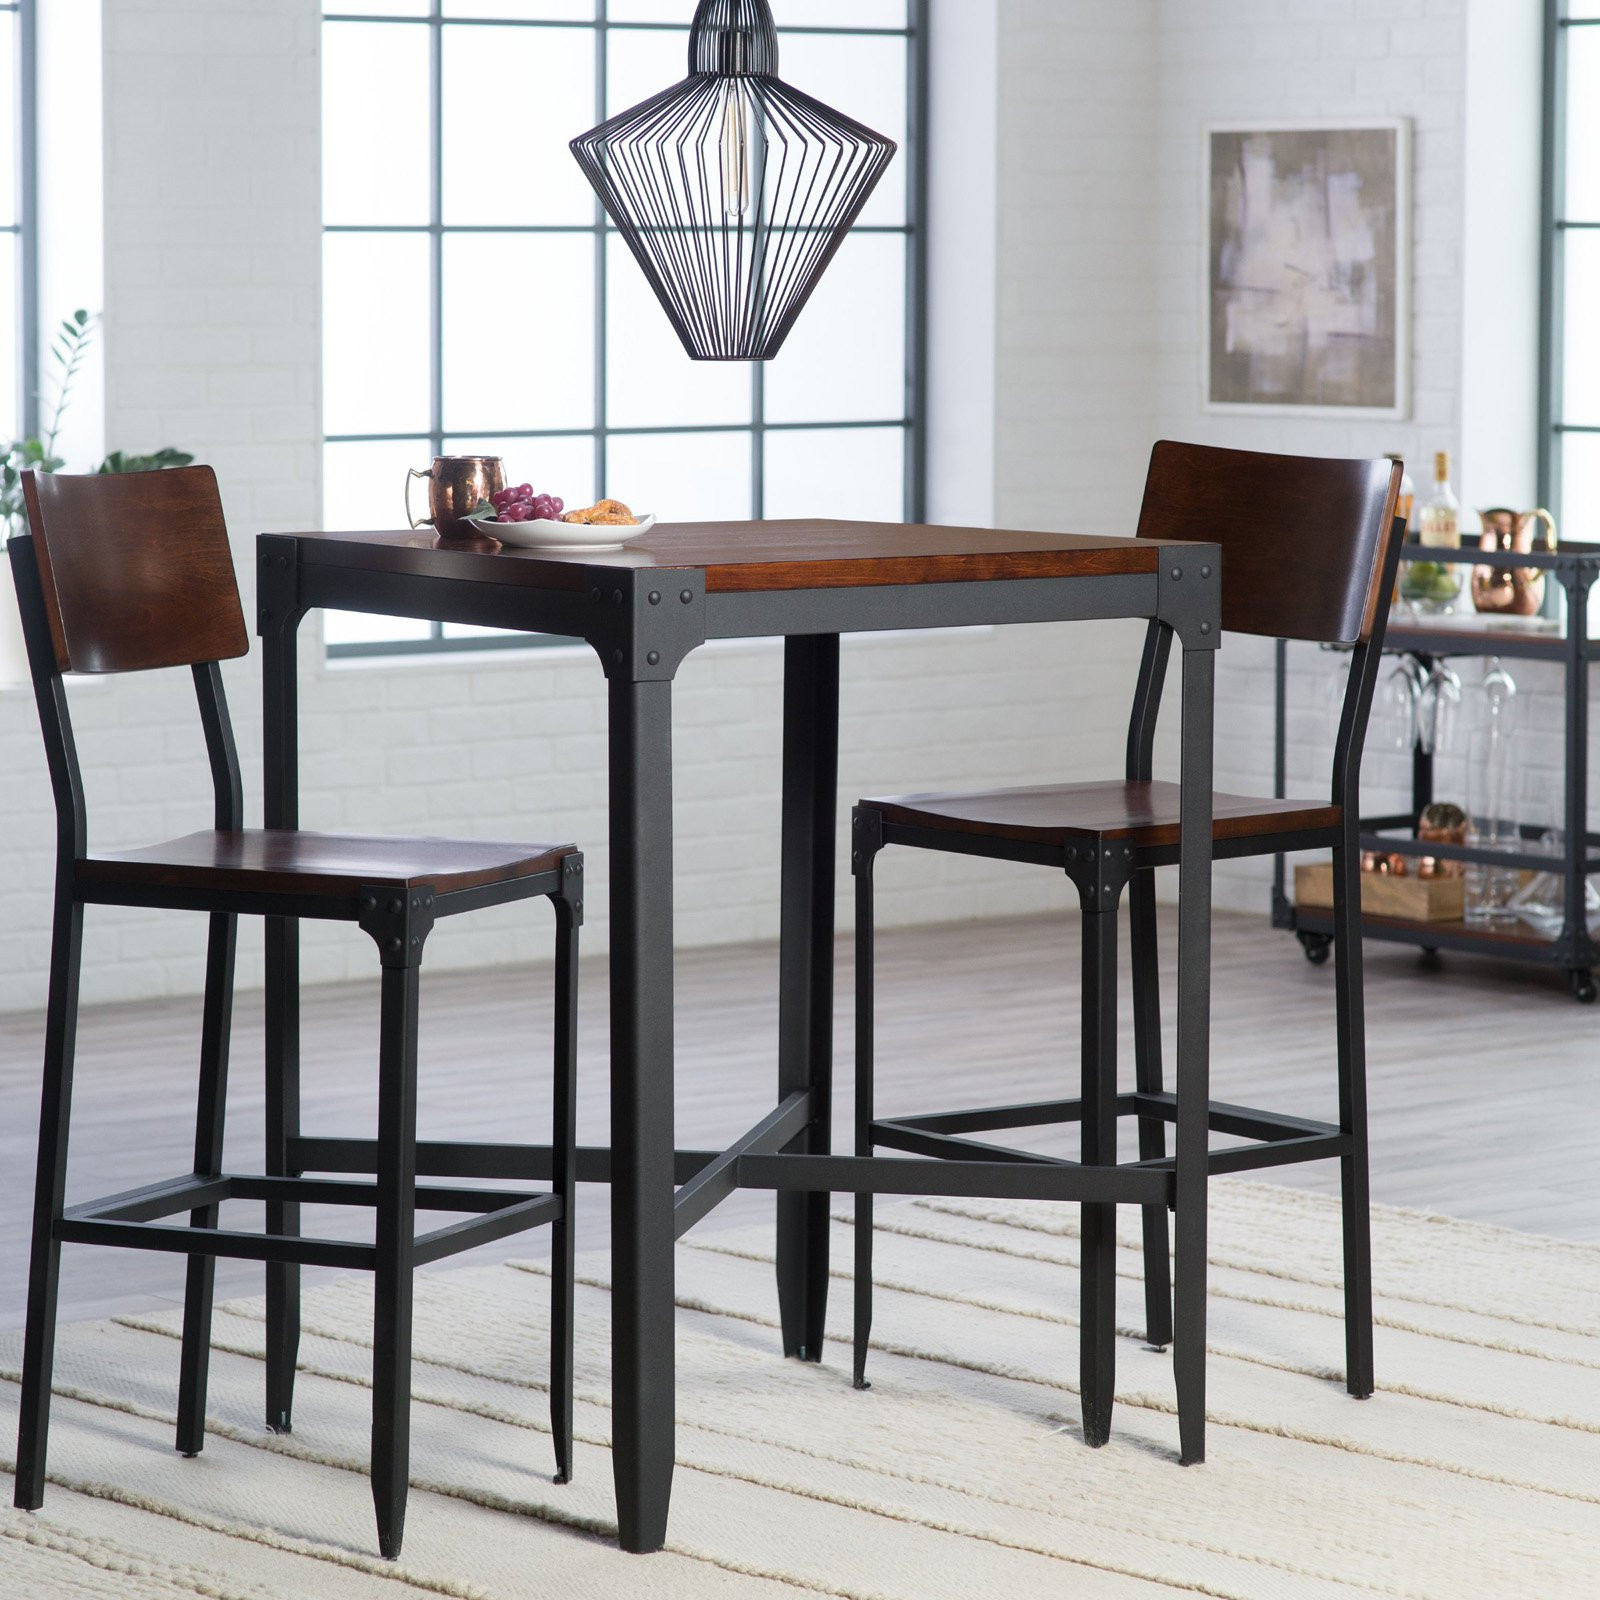 Best ideas about Bar Table And Chairs . Save or Pin Belham Living Trenton 3 Piece Pub Table Set Bar & Pub Now.